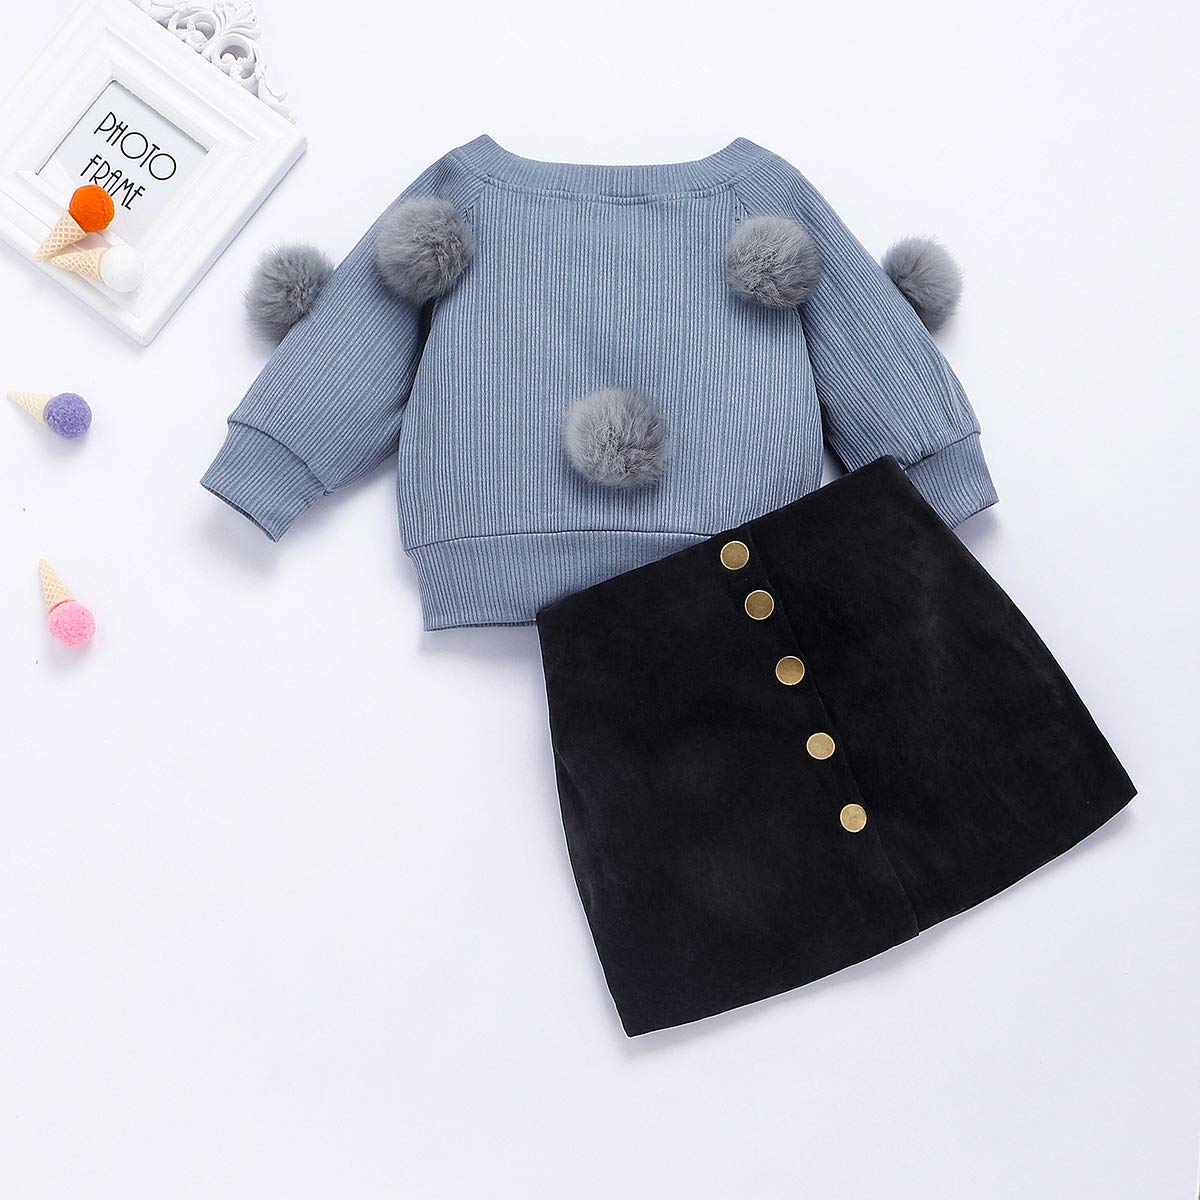 Baby Girl Spring Summer Clothes for Toddler Kids Valentine Shirt Top Button Leather Skirt Dress Outfits Set